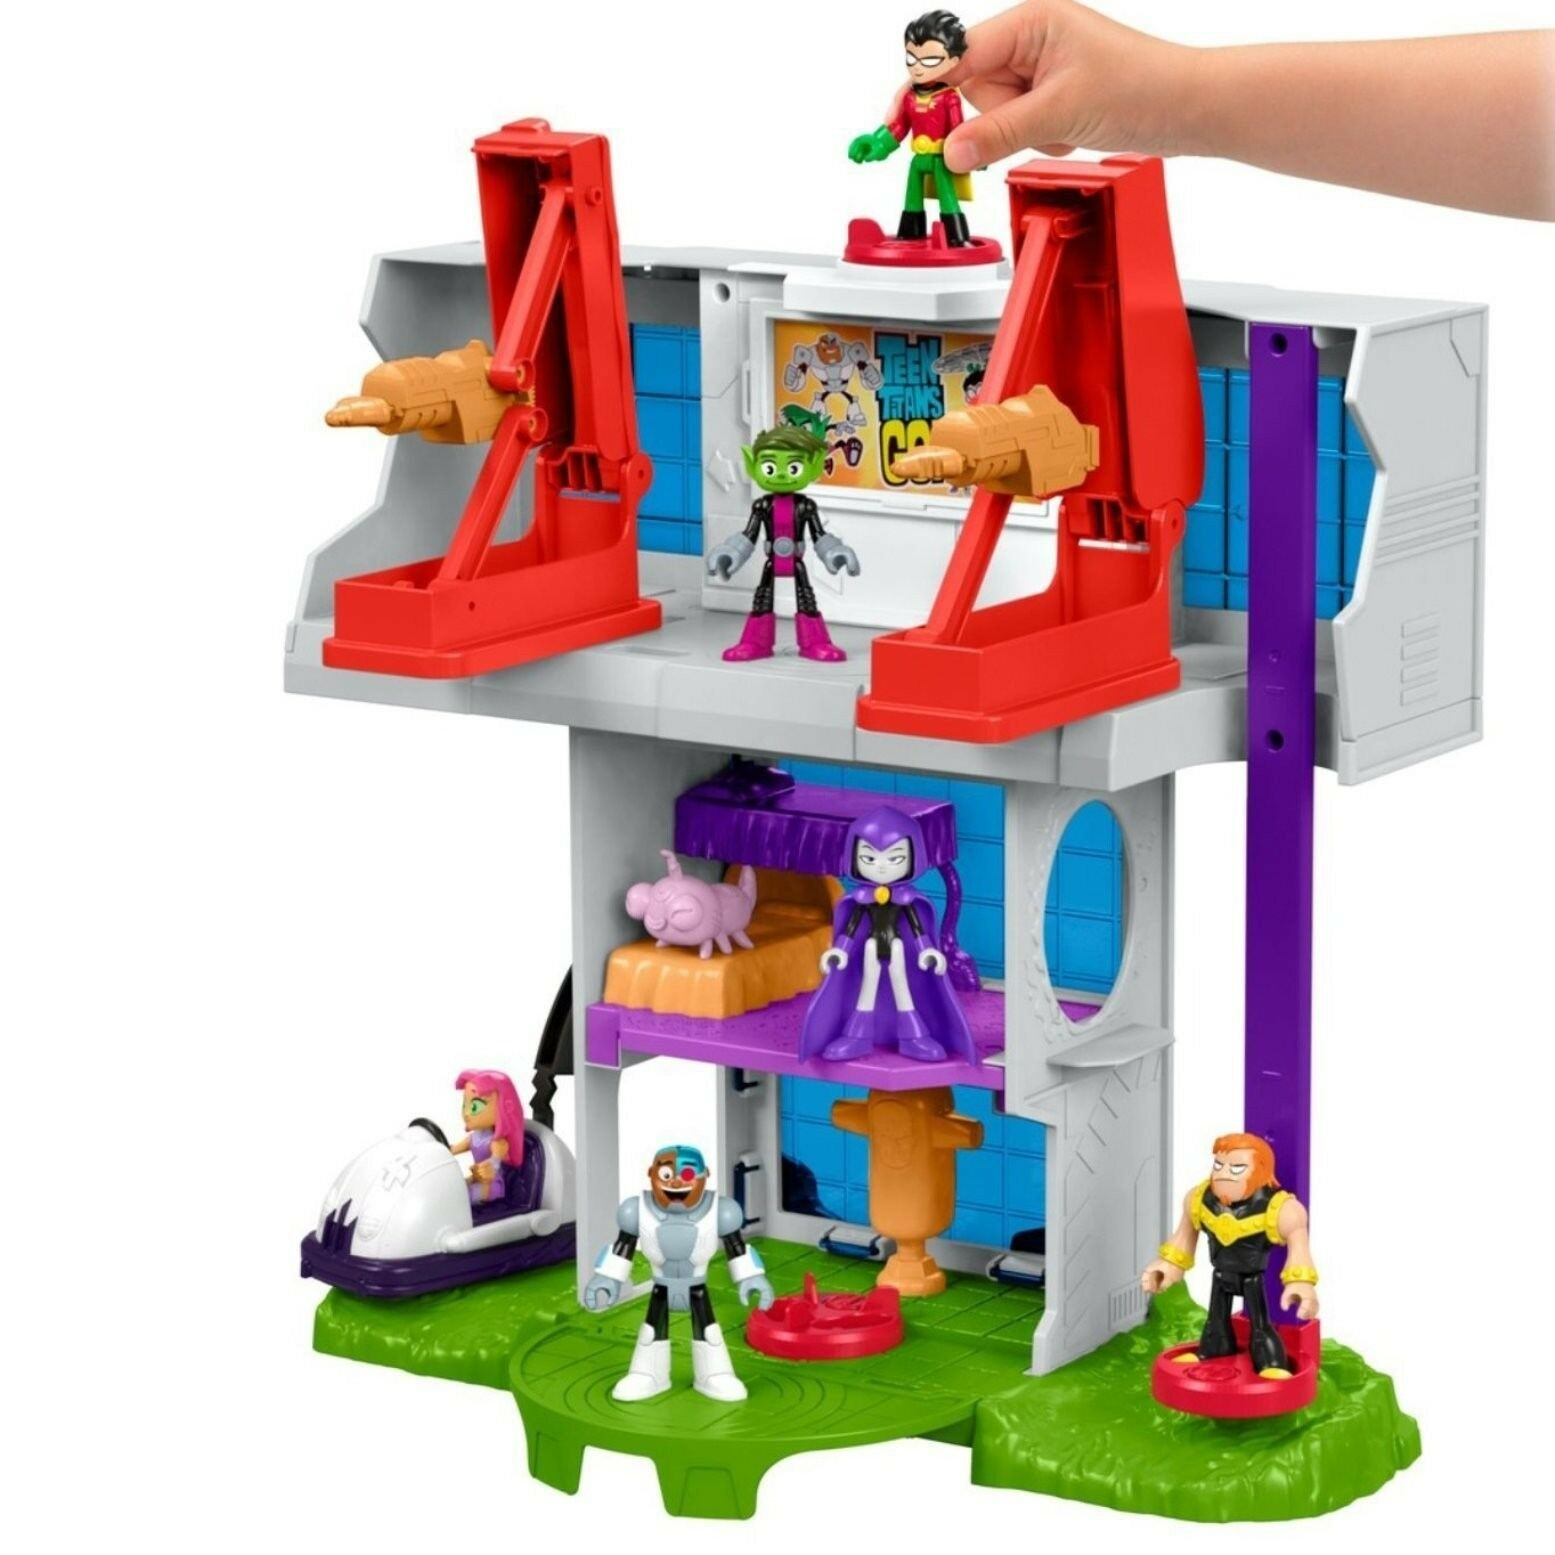 Tower playset imaginext teen - titanen gehen fisher - price zahlen robin mammut neue